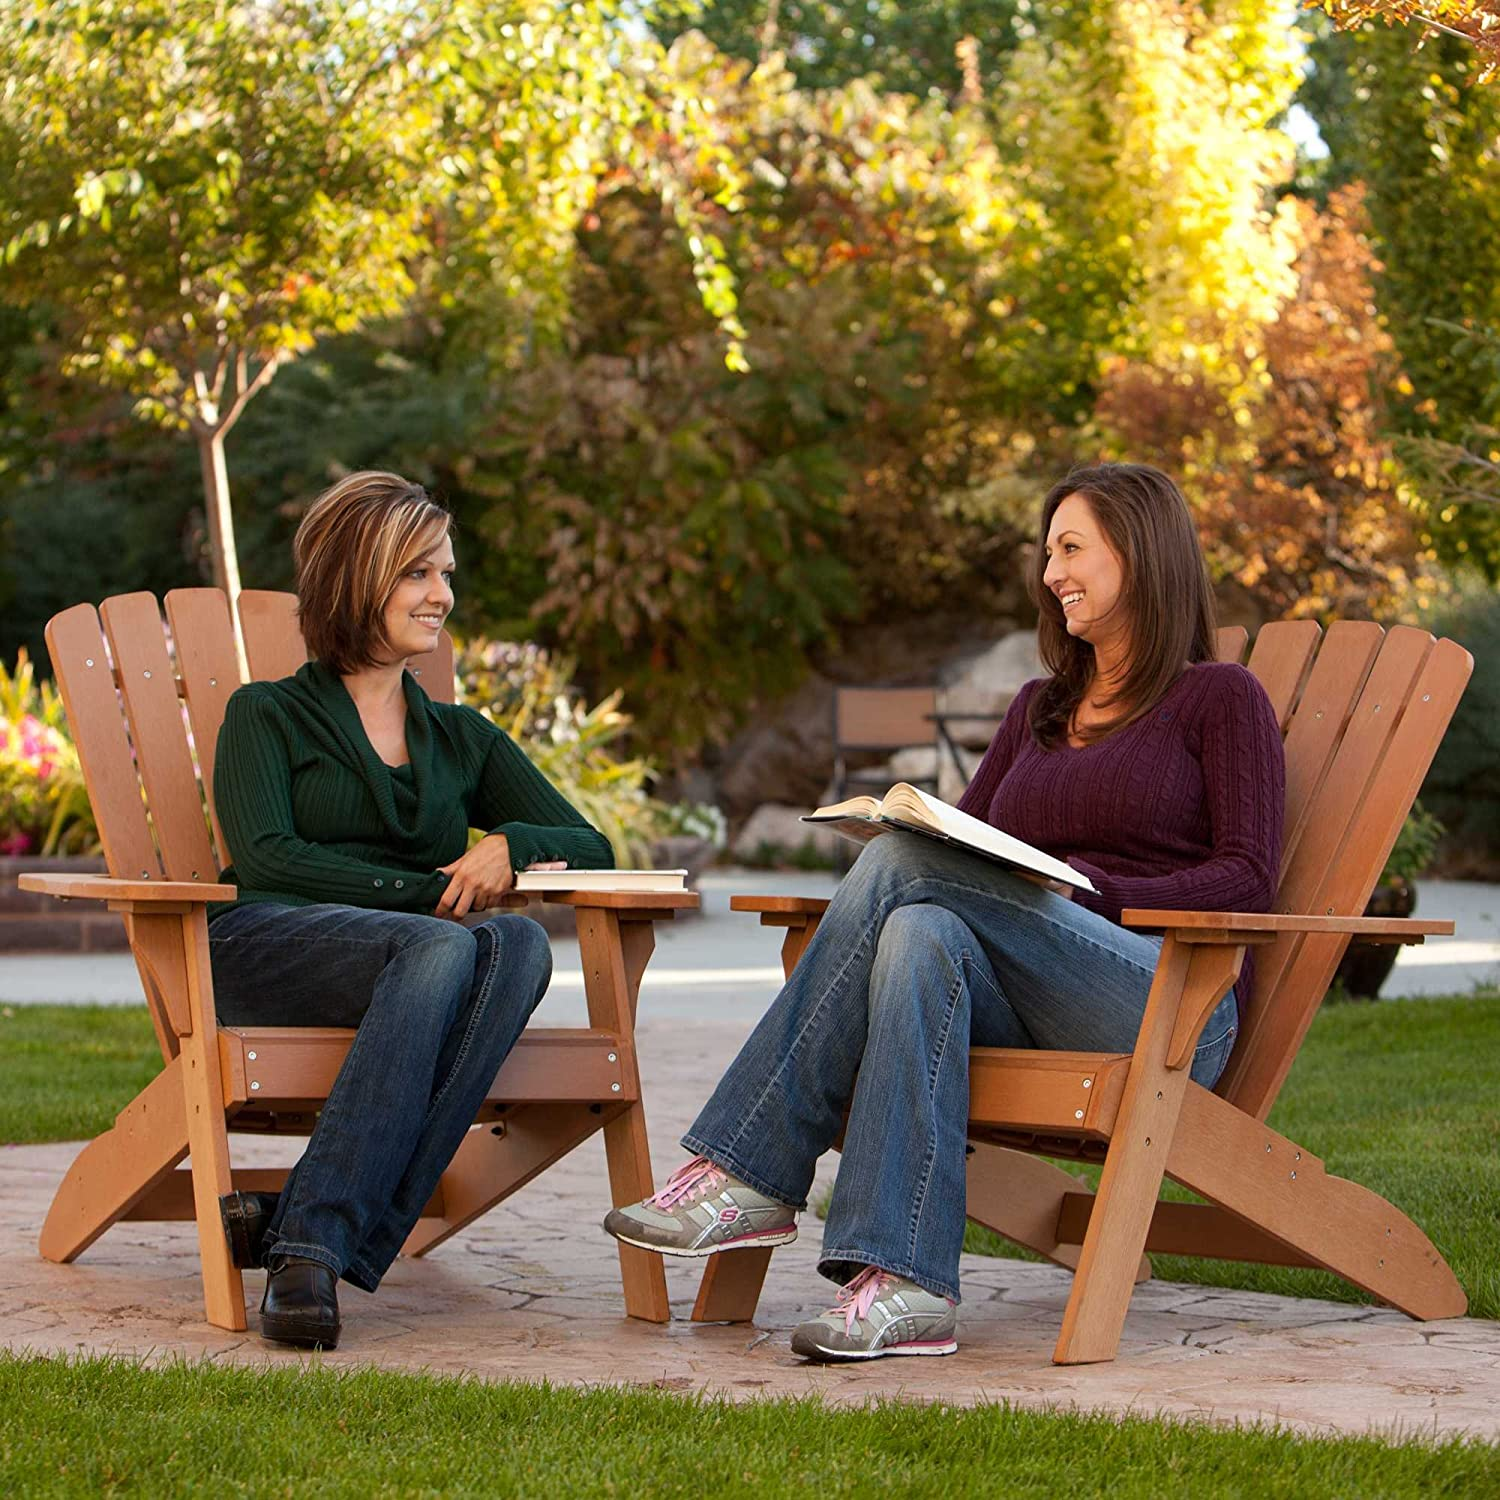 Amazon.com : Lifetime 60064 Adirondack Chair : Patio, Lawn u0026 Garden